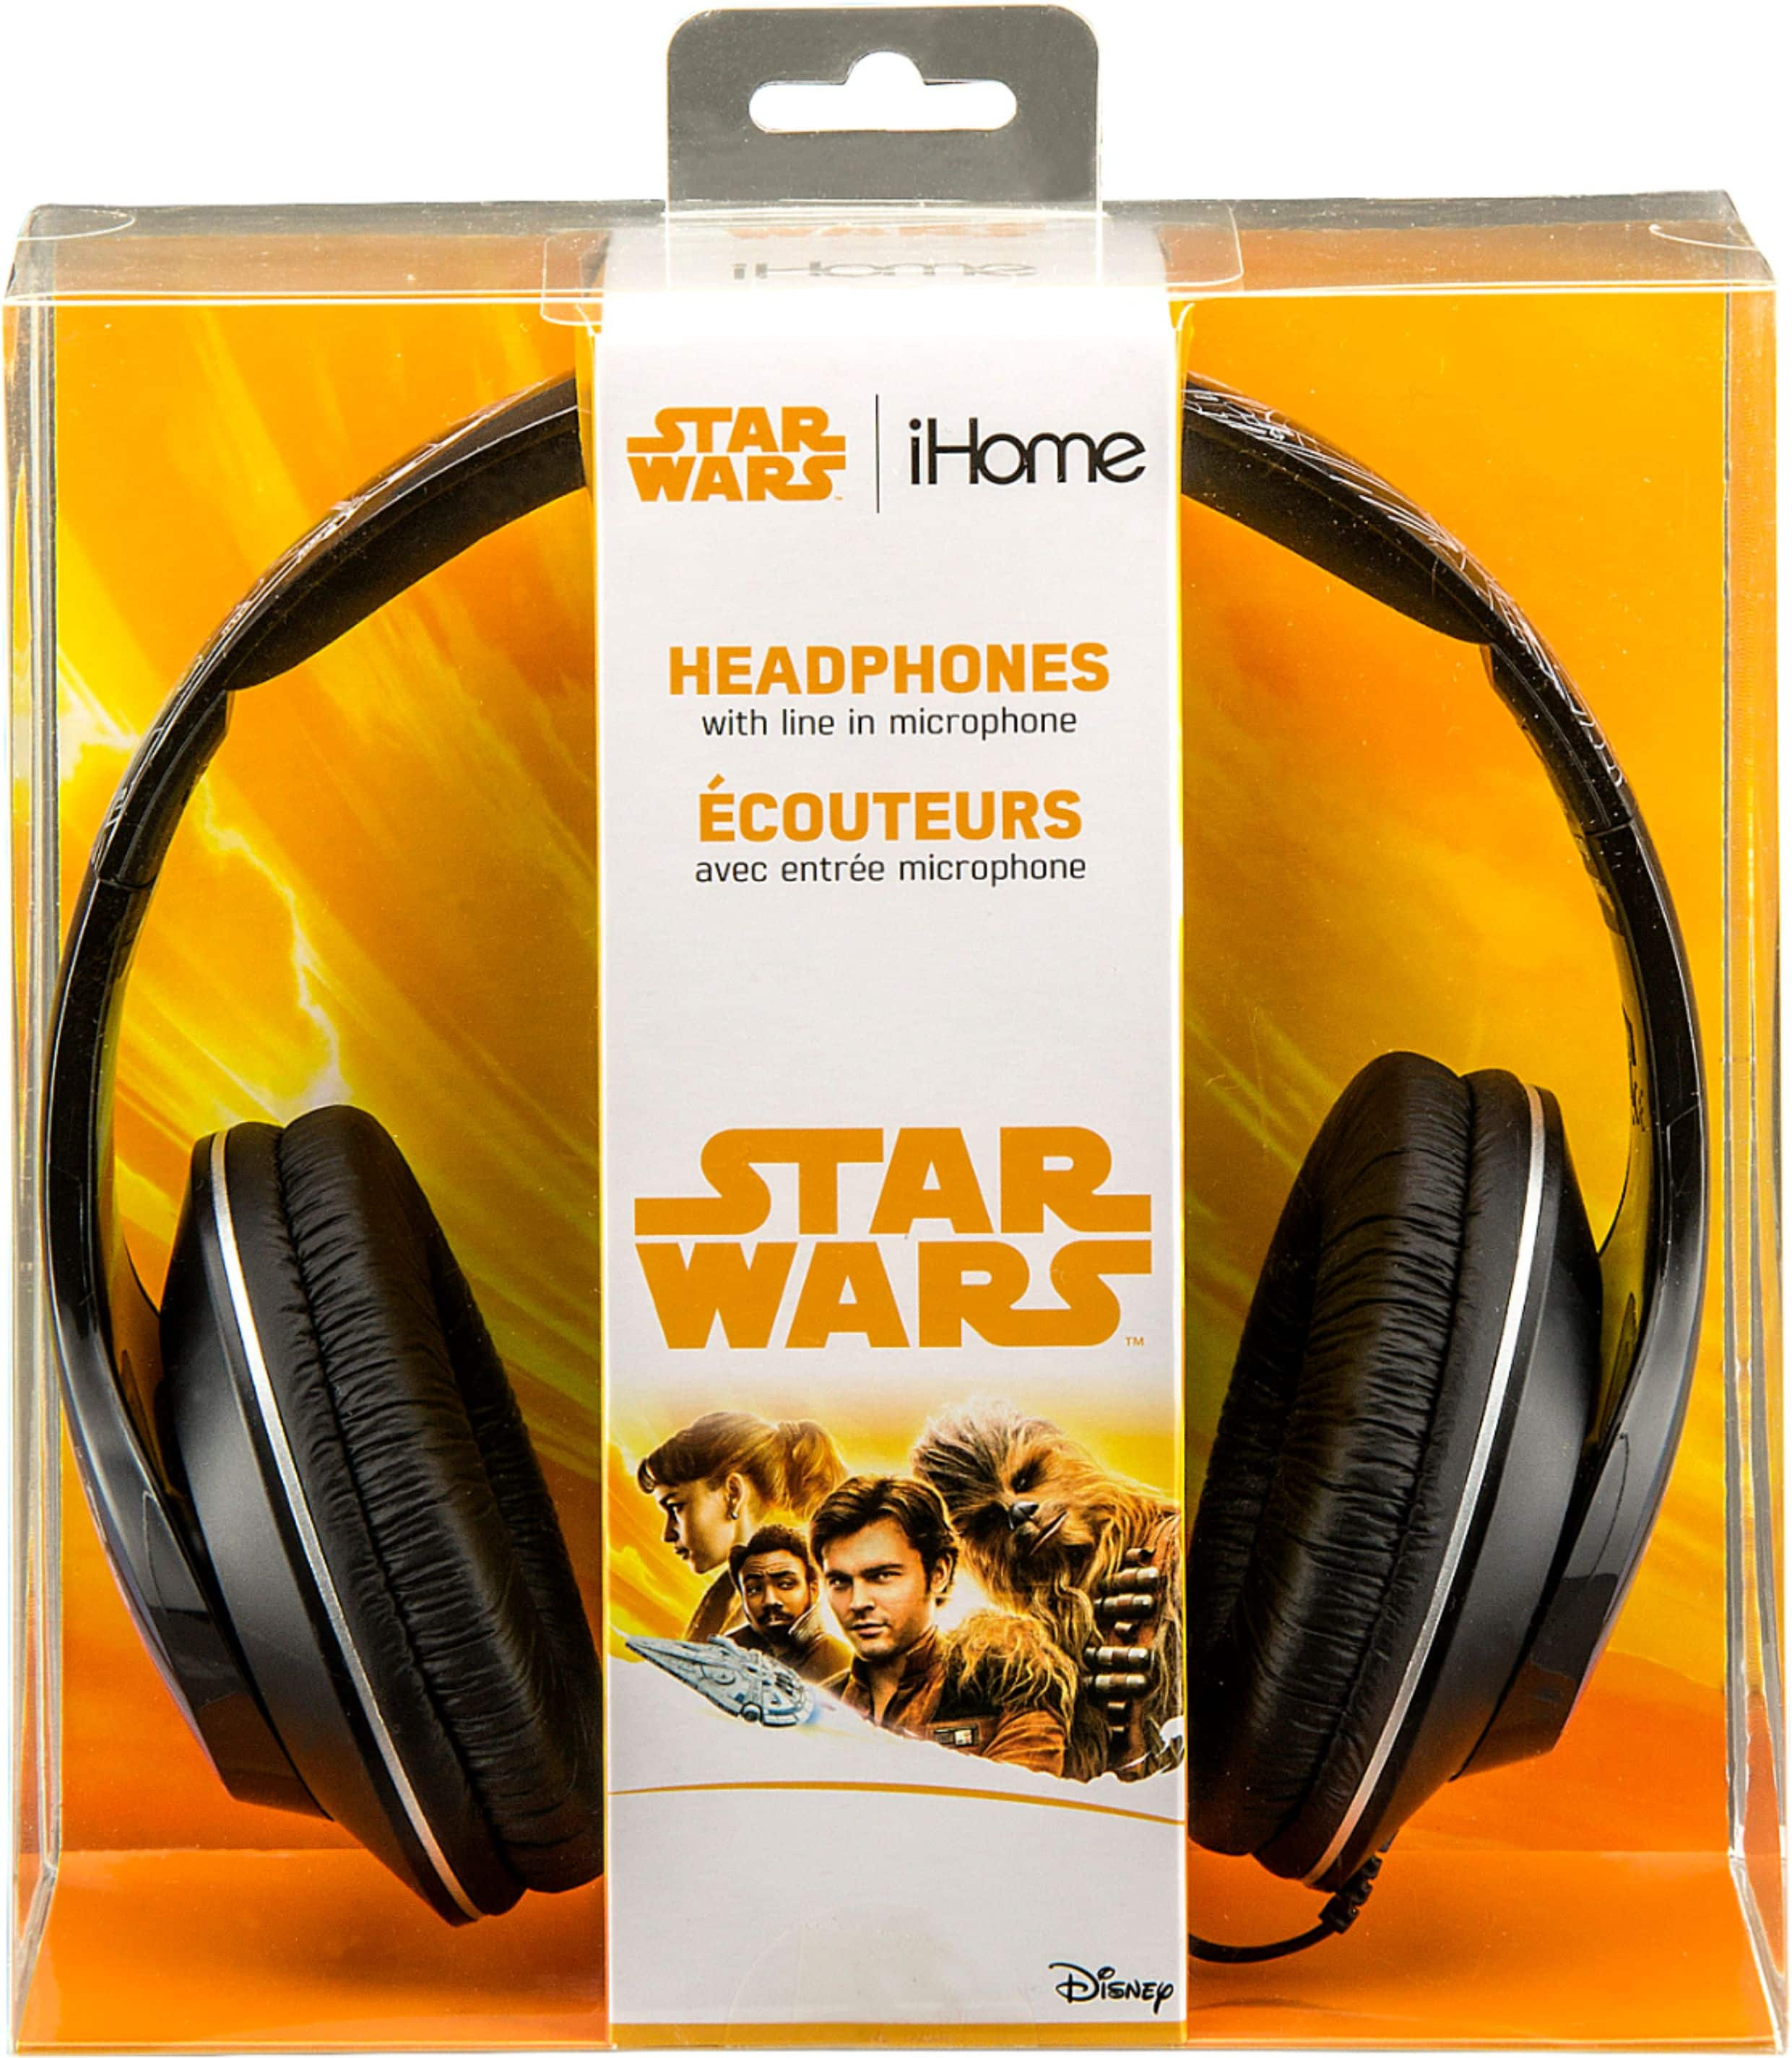 eKids - Star Wars Millenium Falcon Wired Over-the-Ear Headphones - Black $9.99